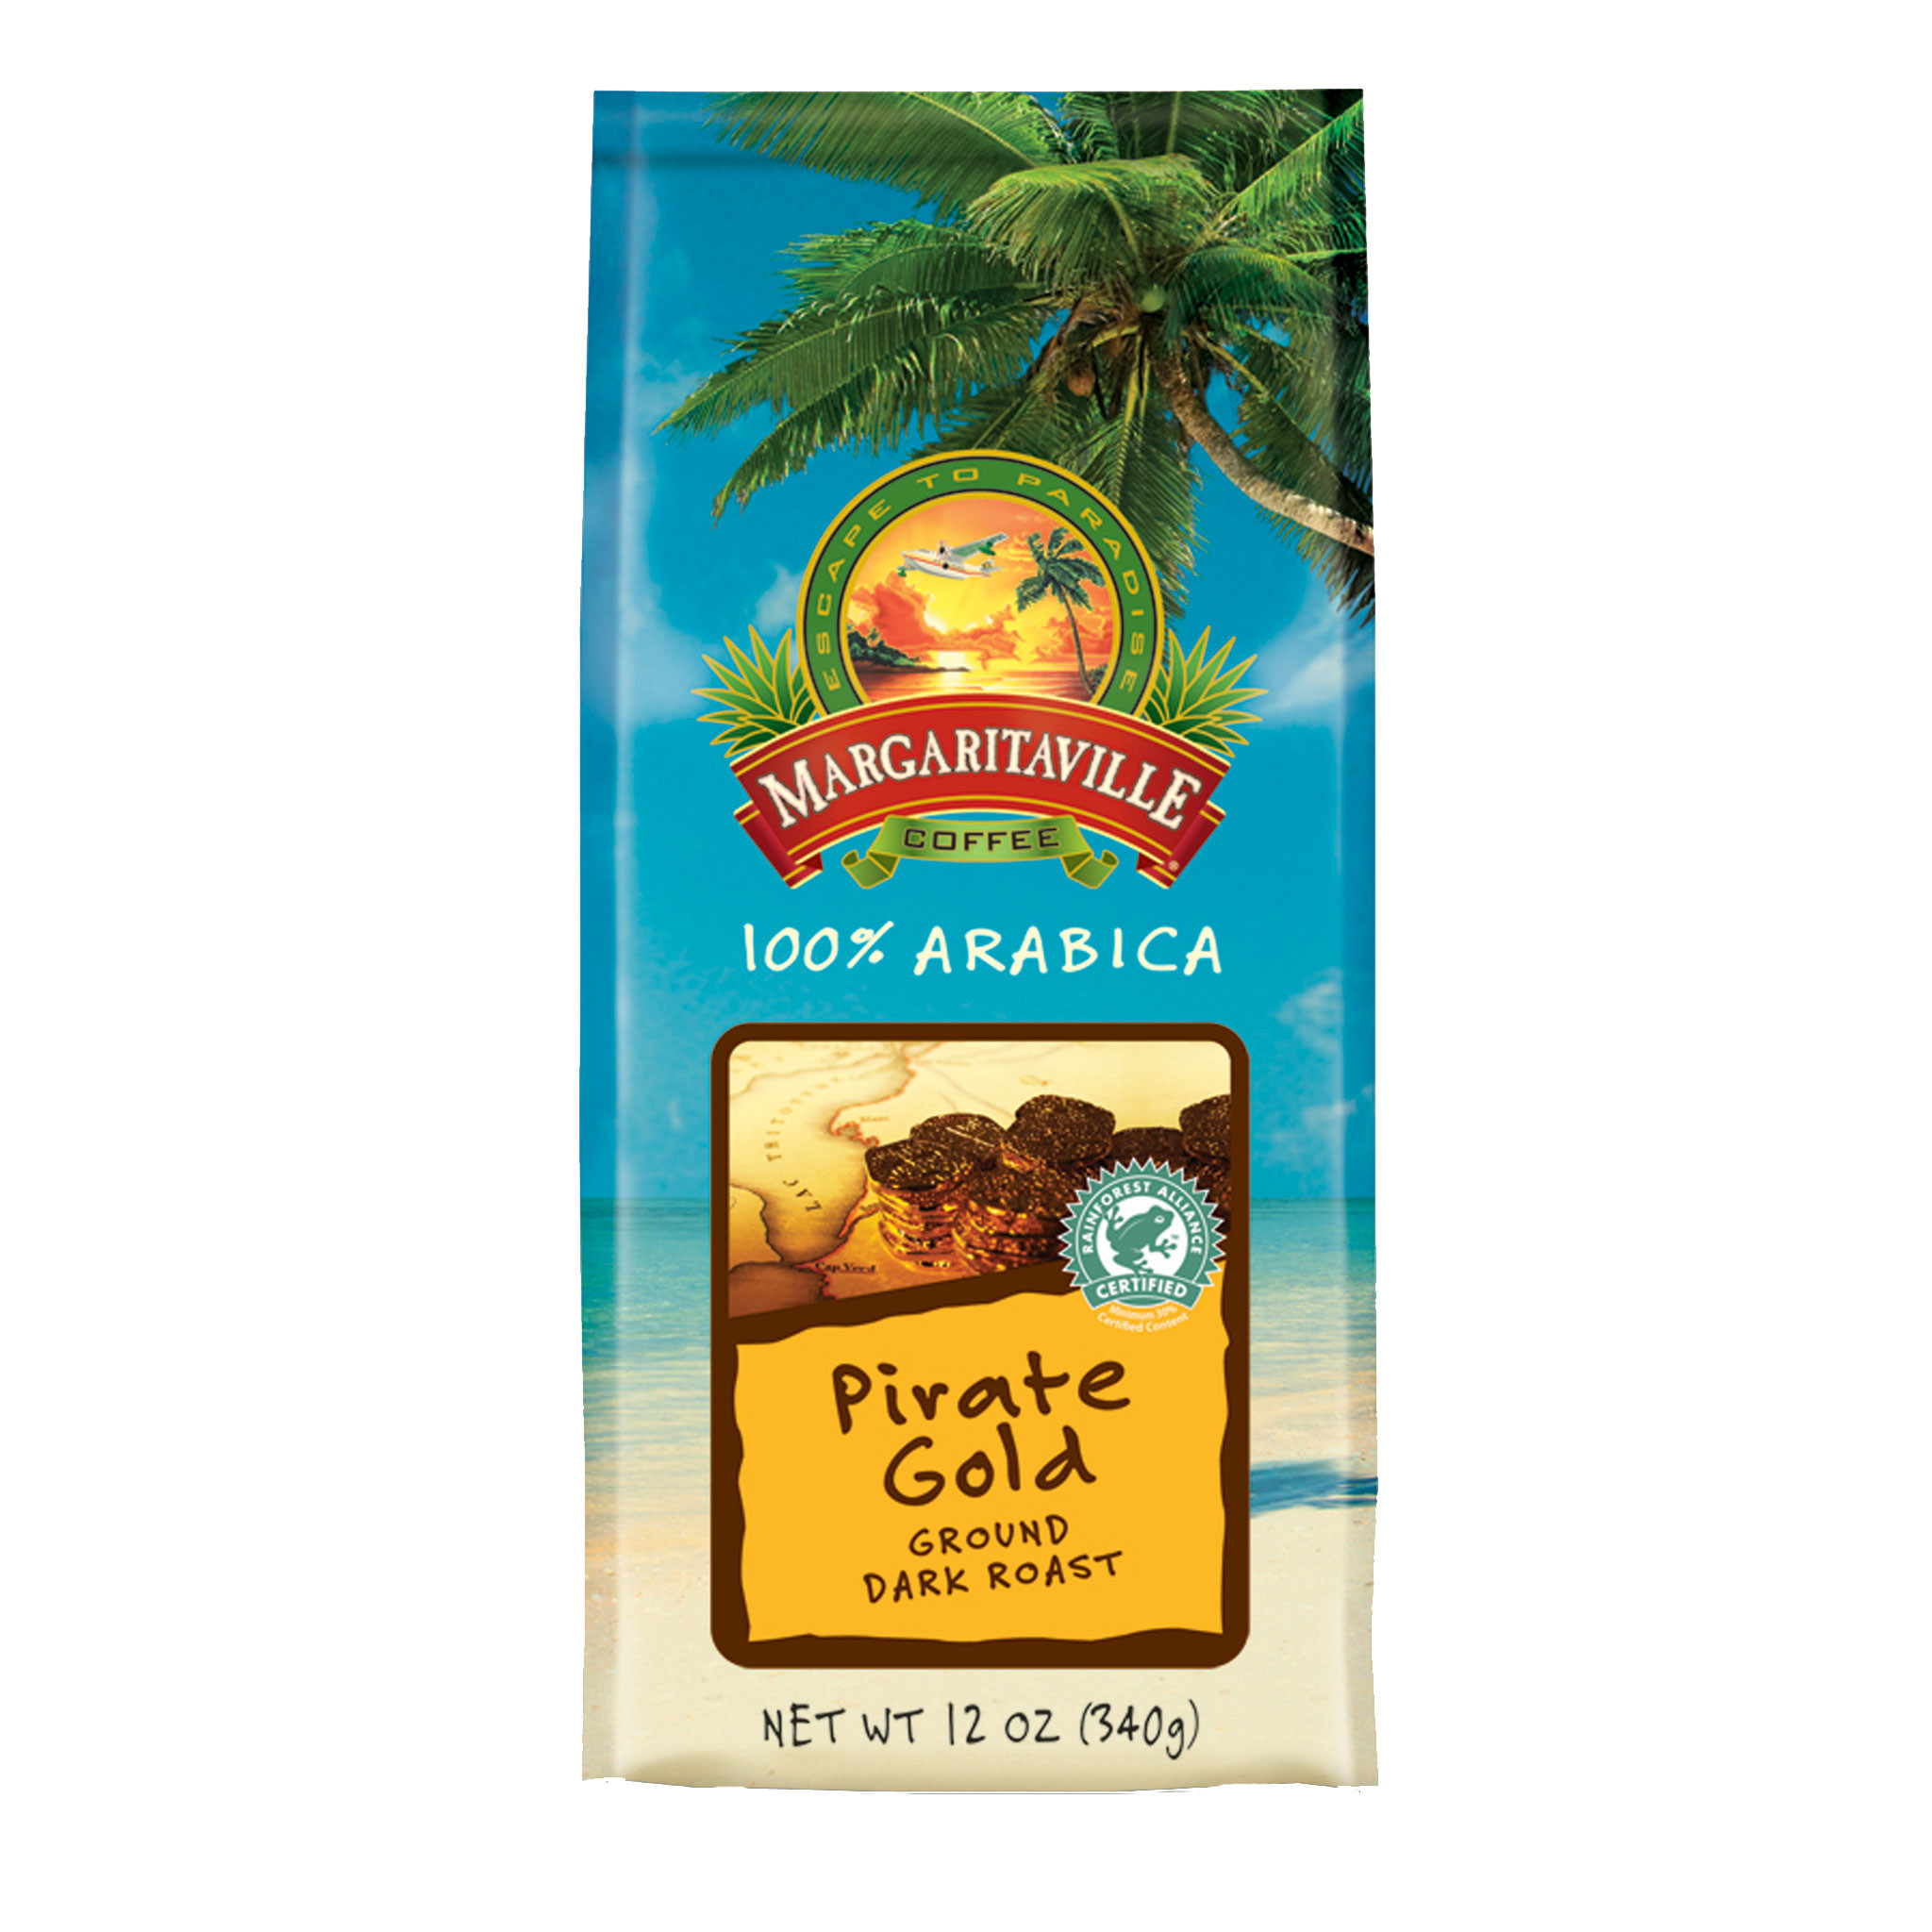 PIRATE GOLD COFFEE